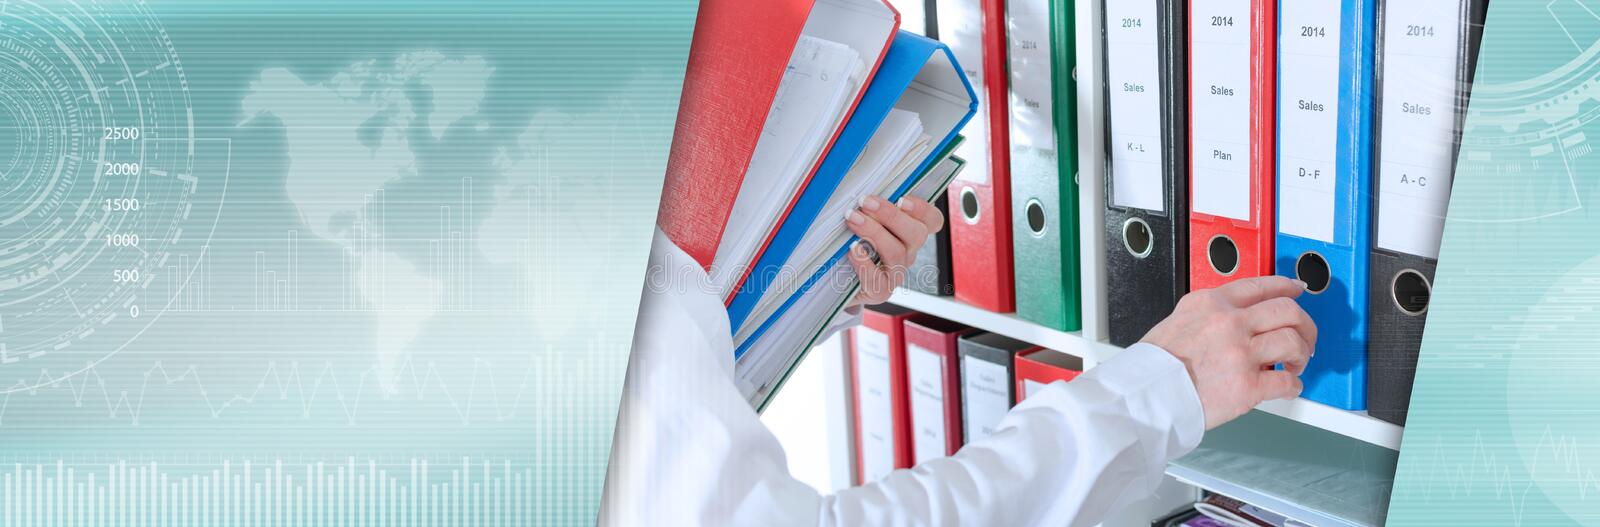 Businesswoman taking binders from a shelf; panoramic banner royalty free stock images